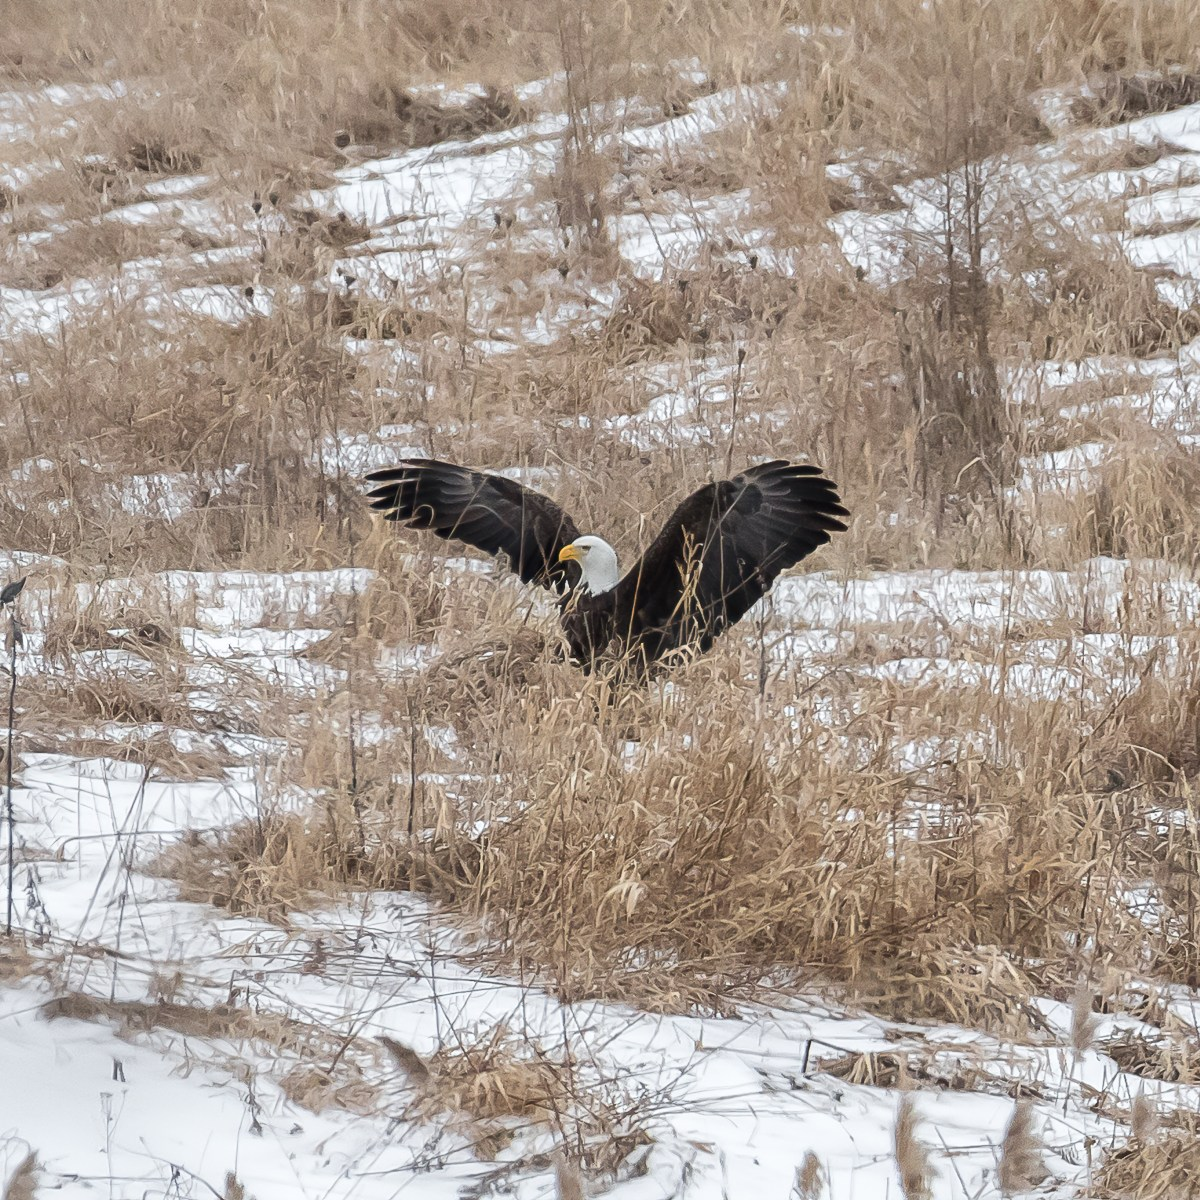 A bald eagles lands with wings outstretched in a snow-covered meadow